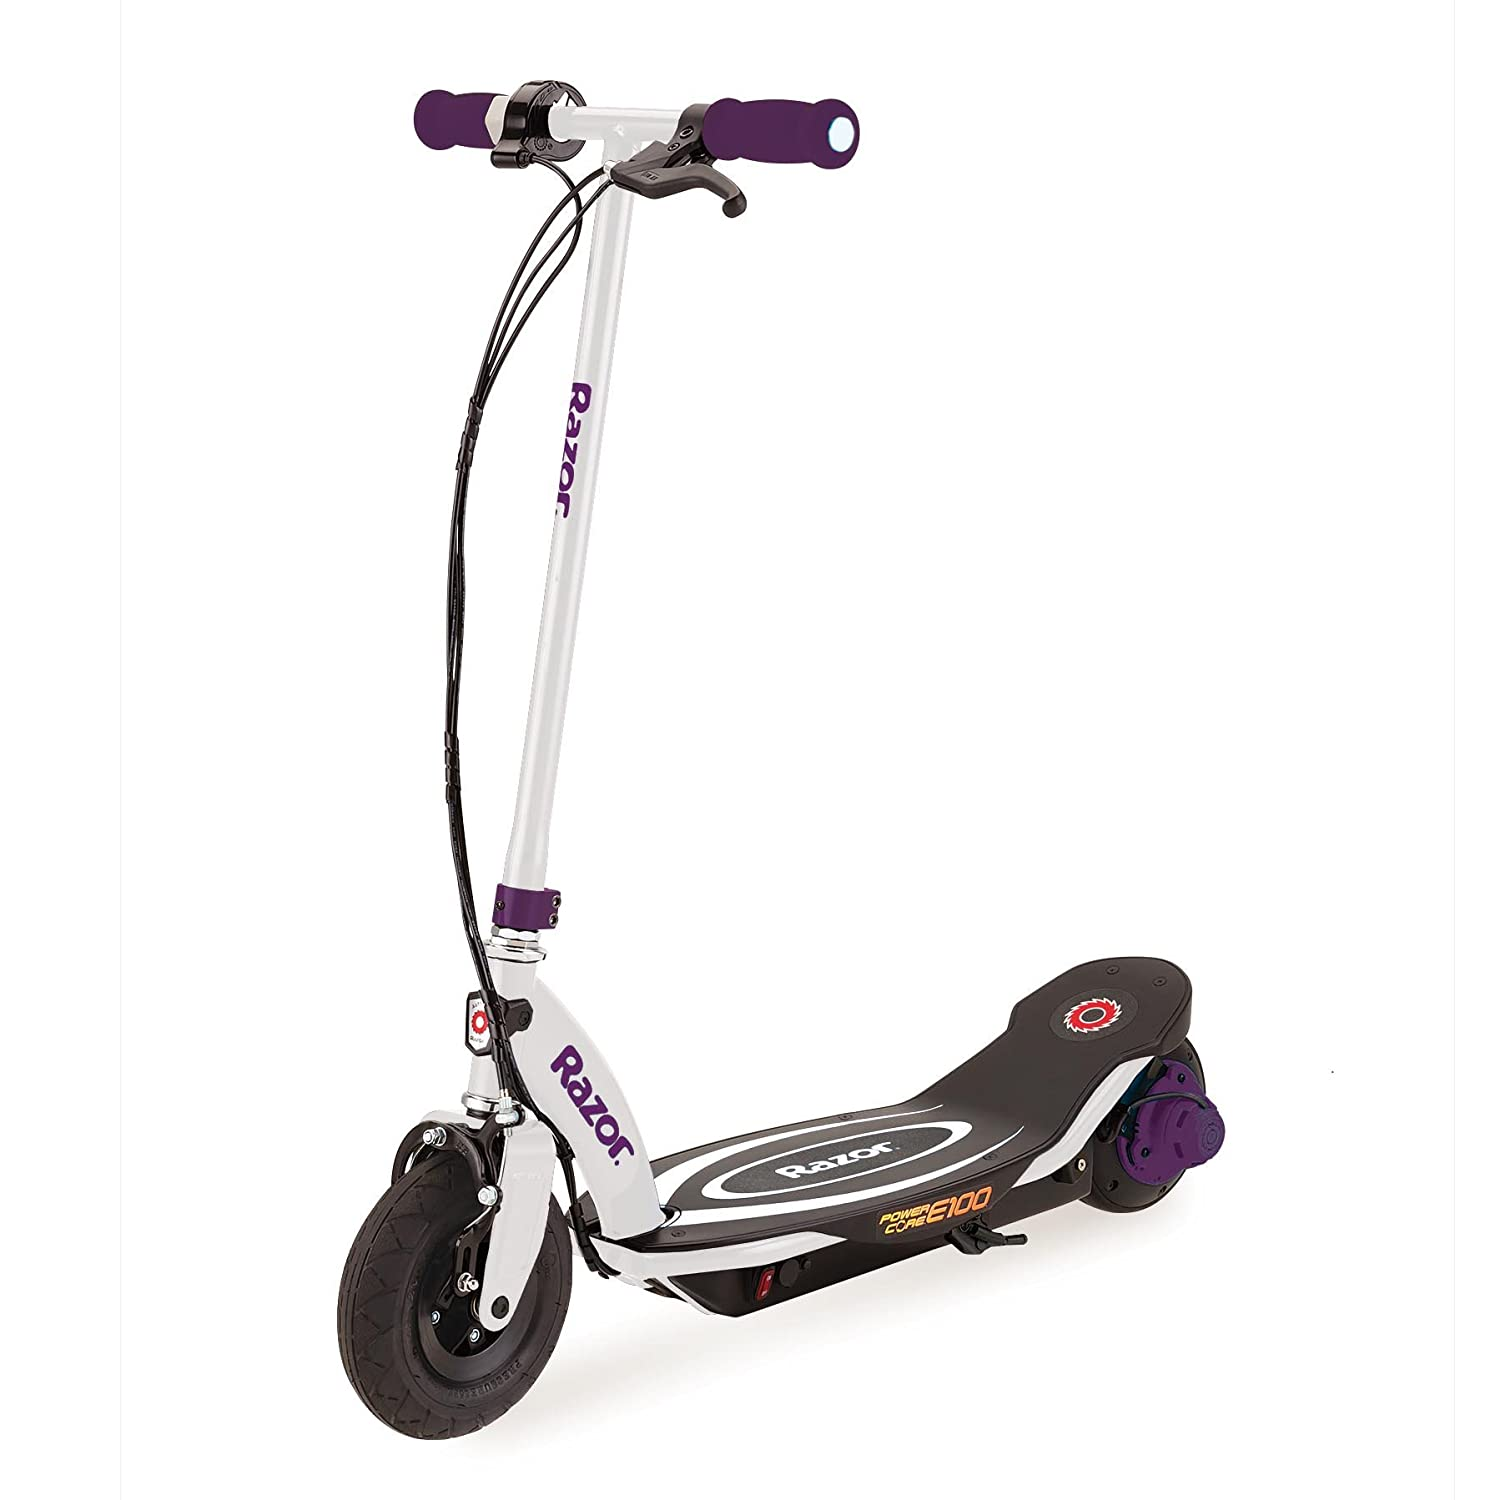 Razor Power Core E100 Electric Hub Motor Kids Toy Motorized Kick Scooter, Purple